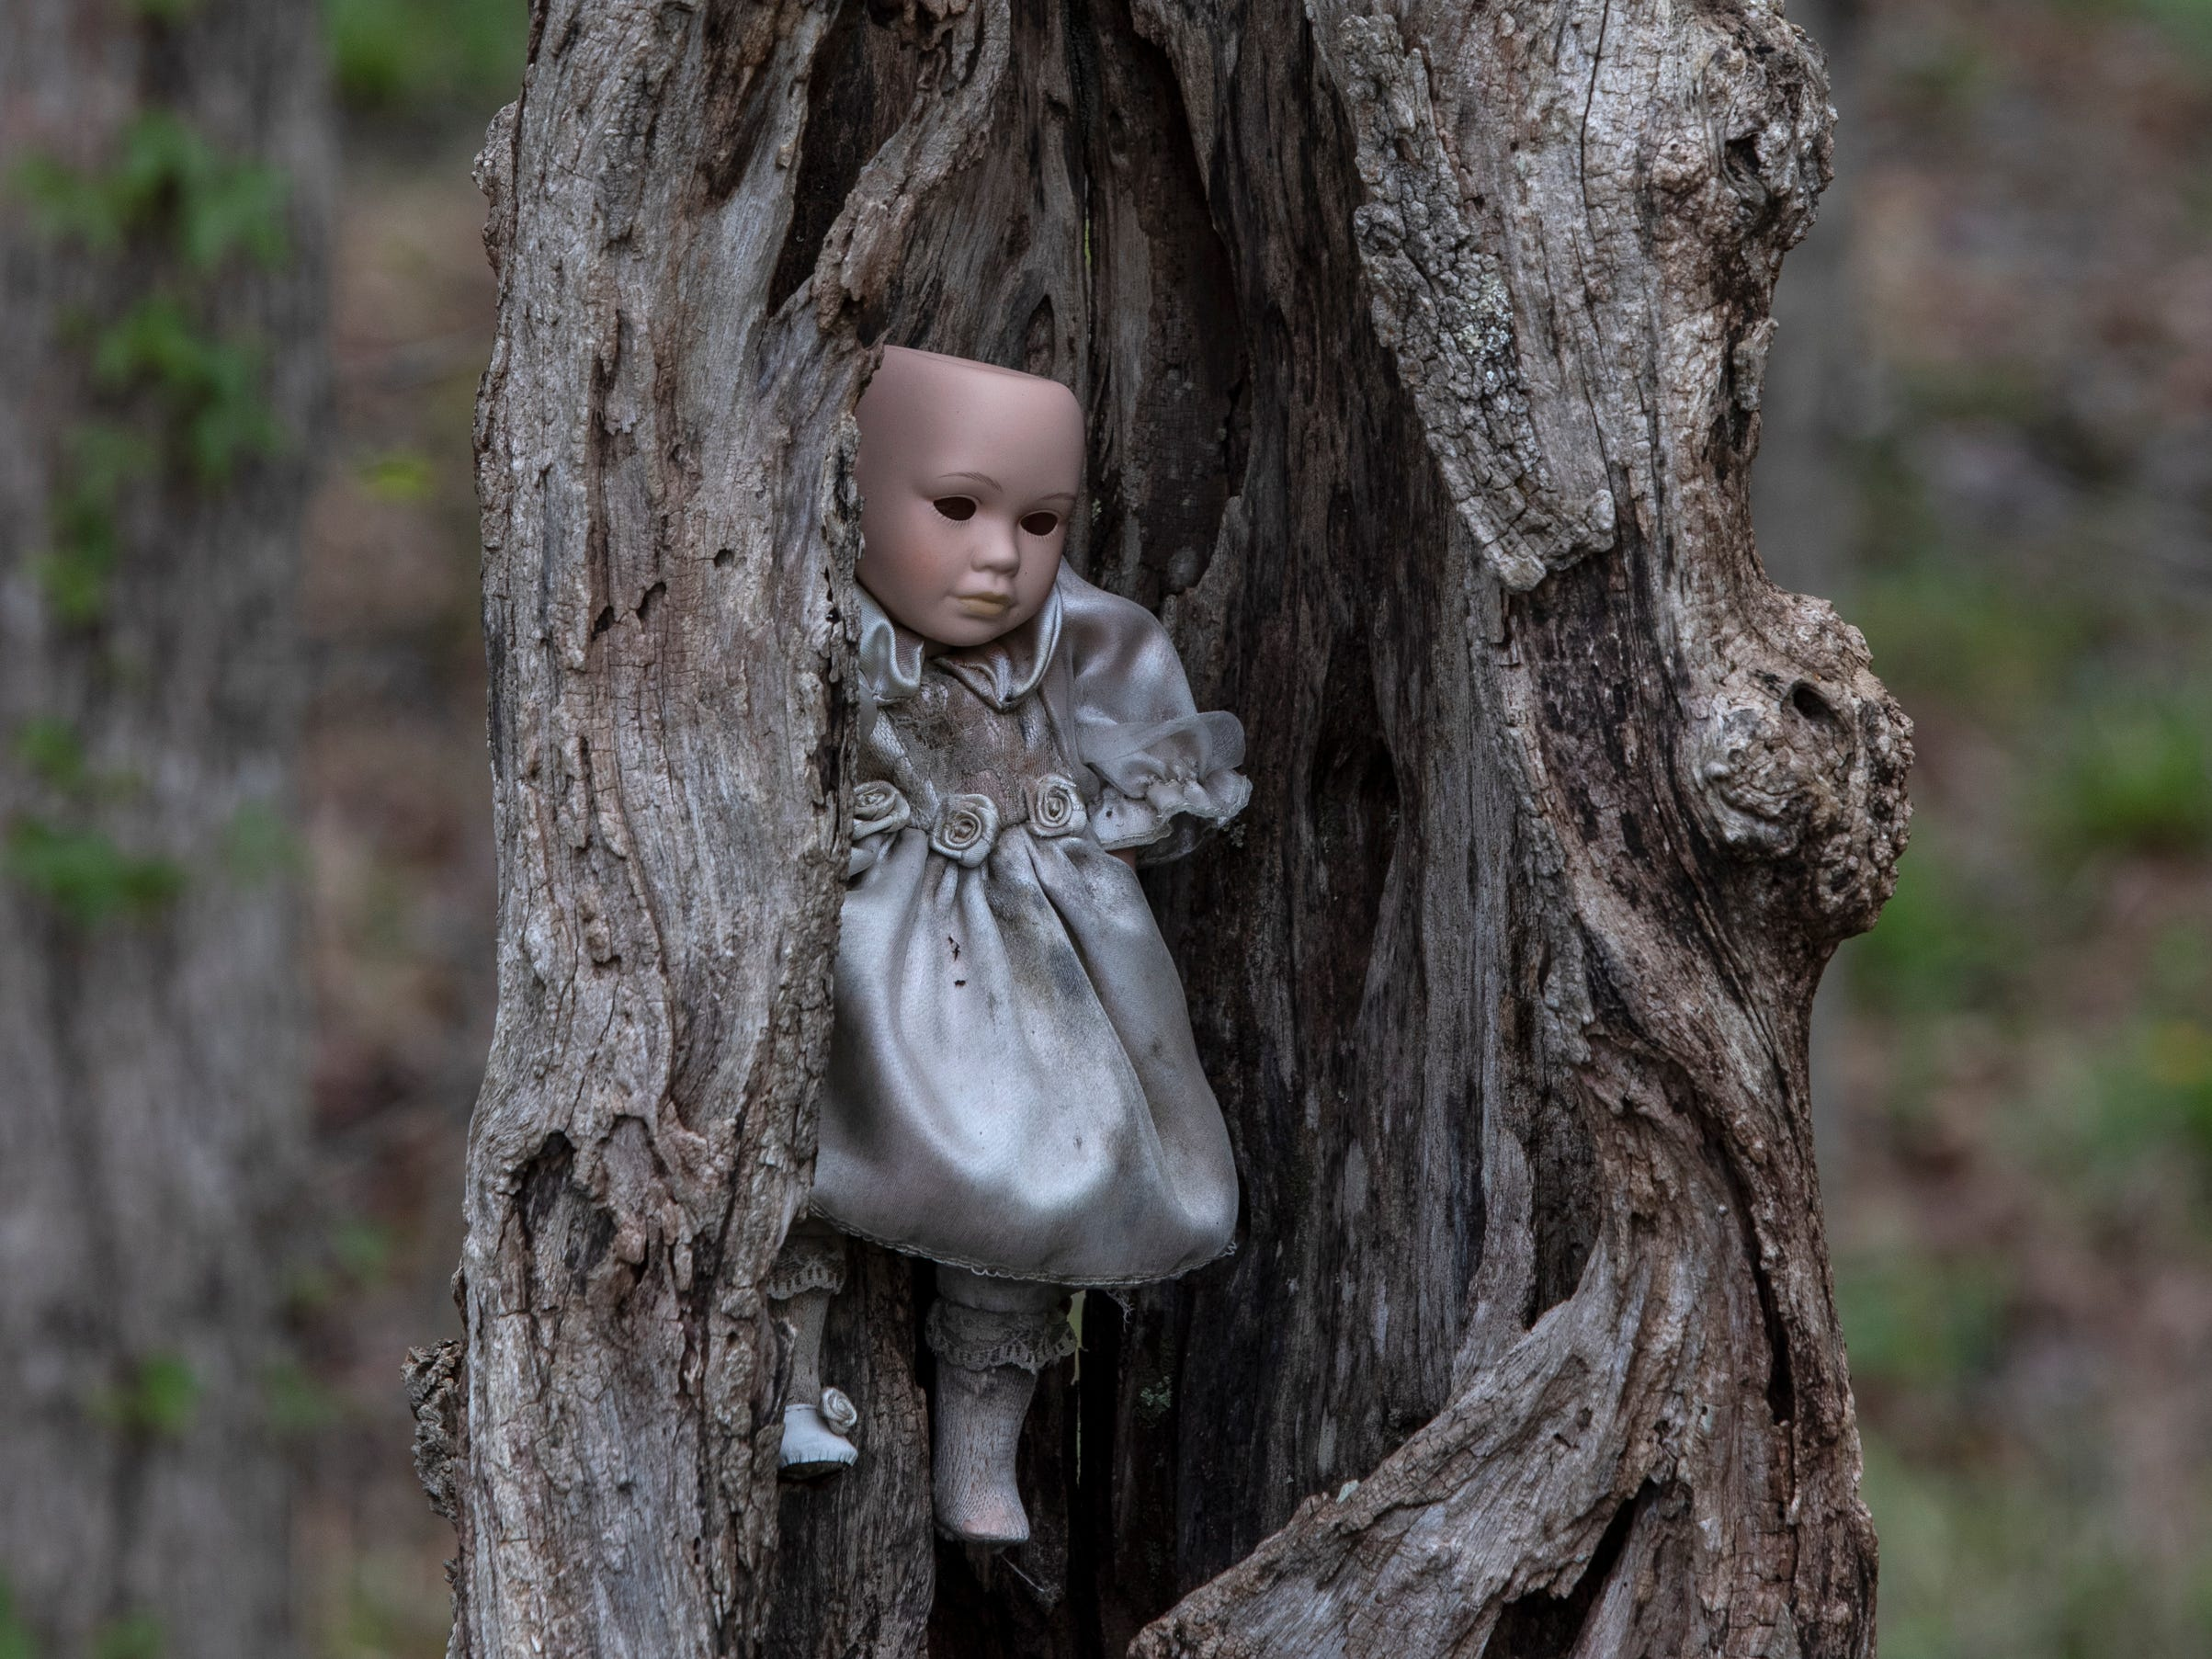 A baby doll lives in the remains of an old tree at the home for Wayward Babydolls. April 19, 2019.